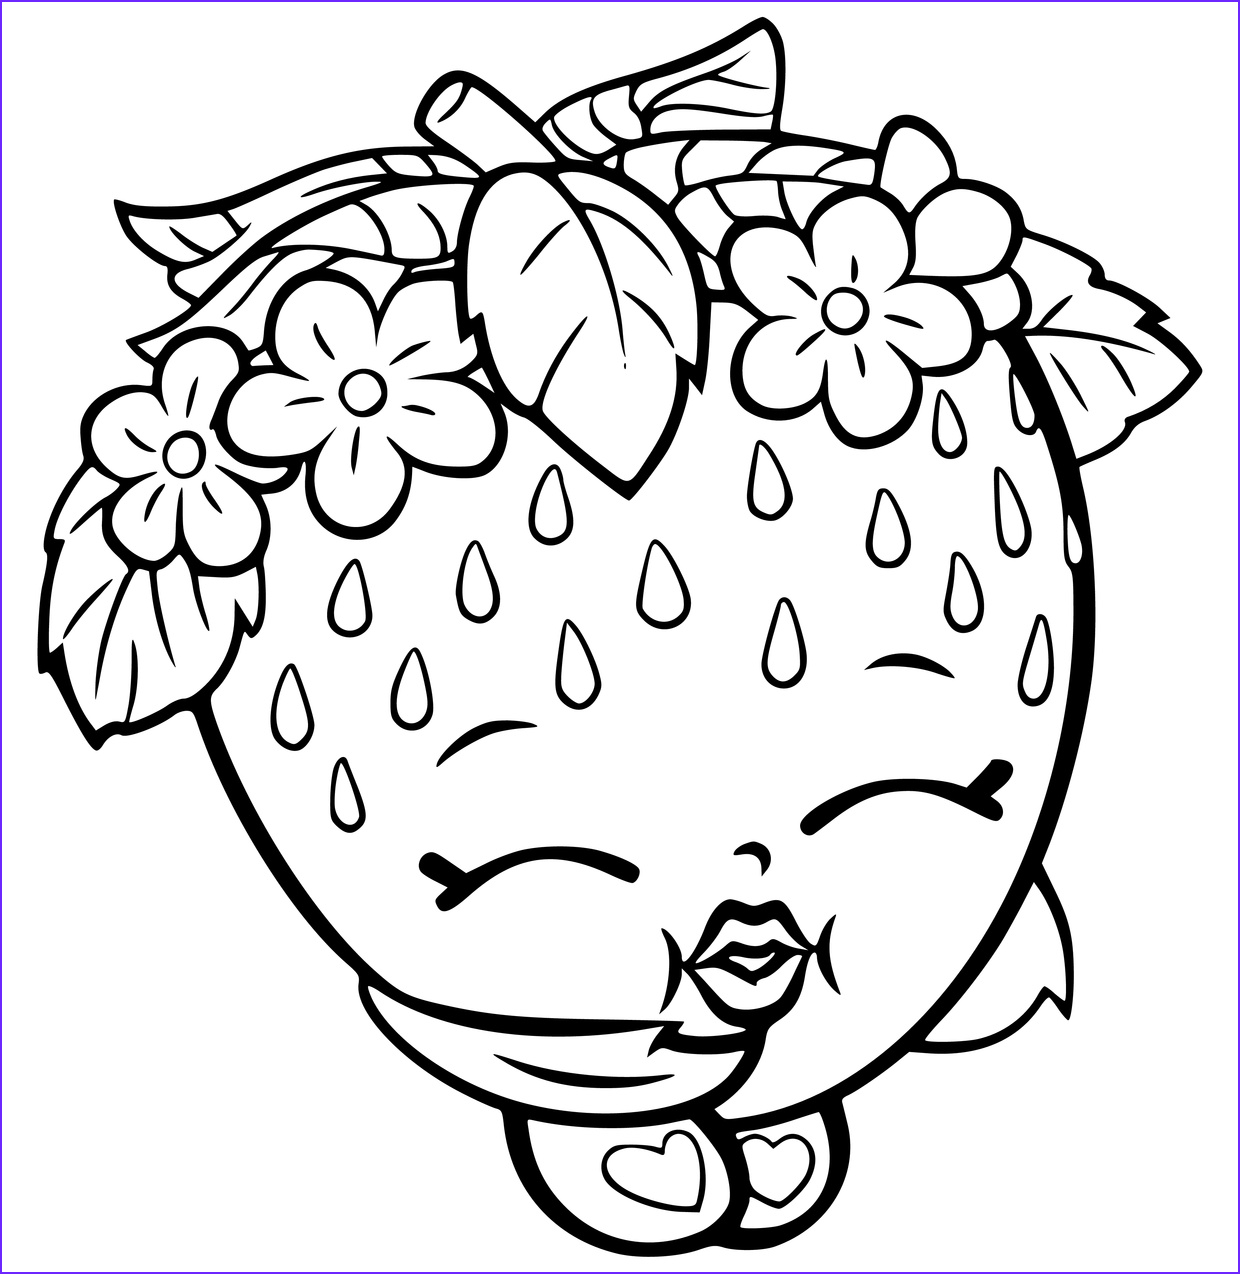 Coloring Pics Luxury Photos Shopkins Coloring Pages Best Coloring Pages for Kids